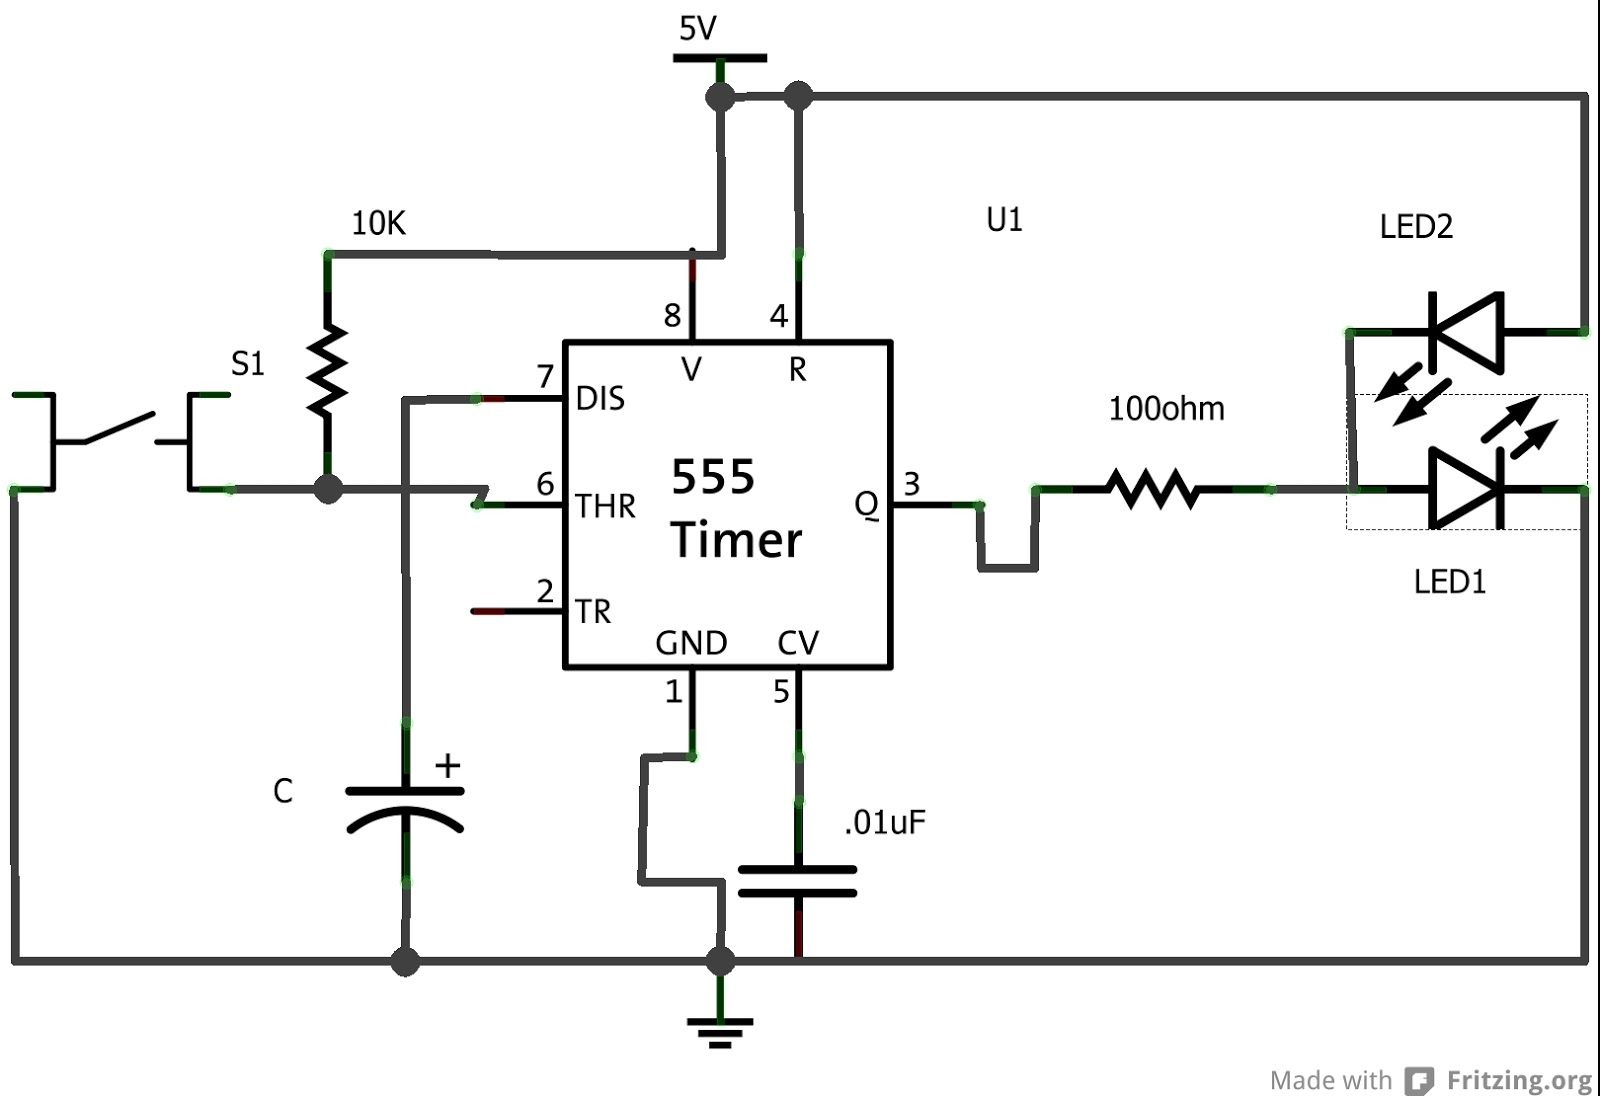 555 timer operating modes